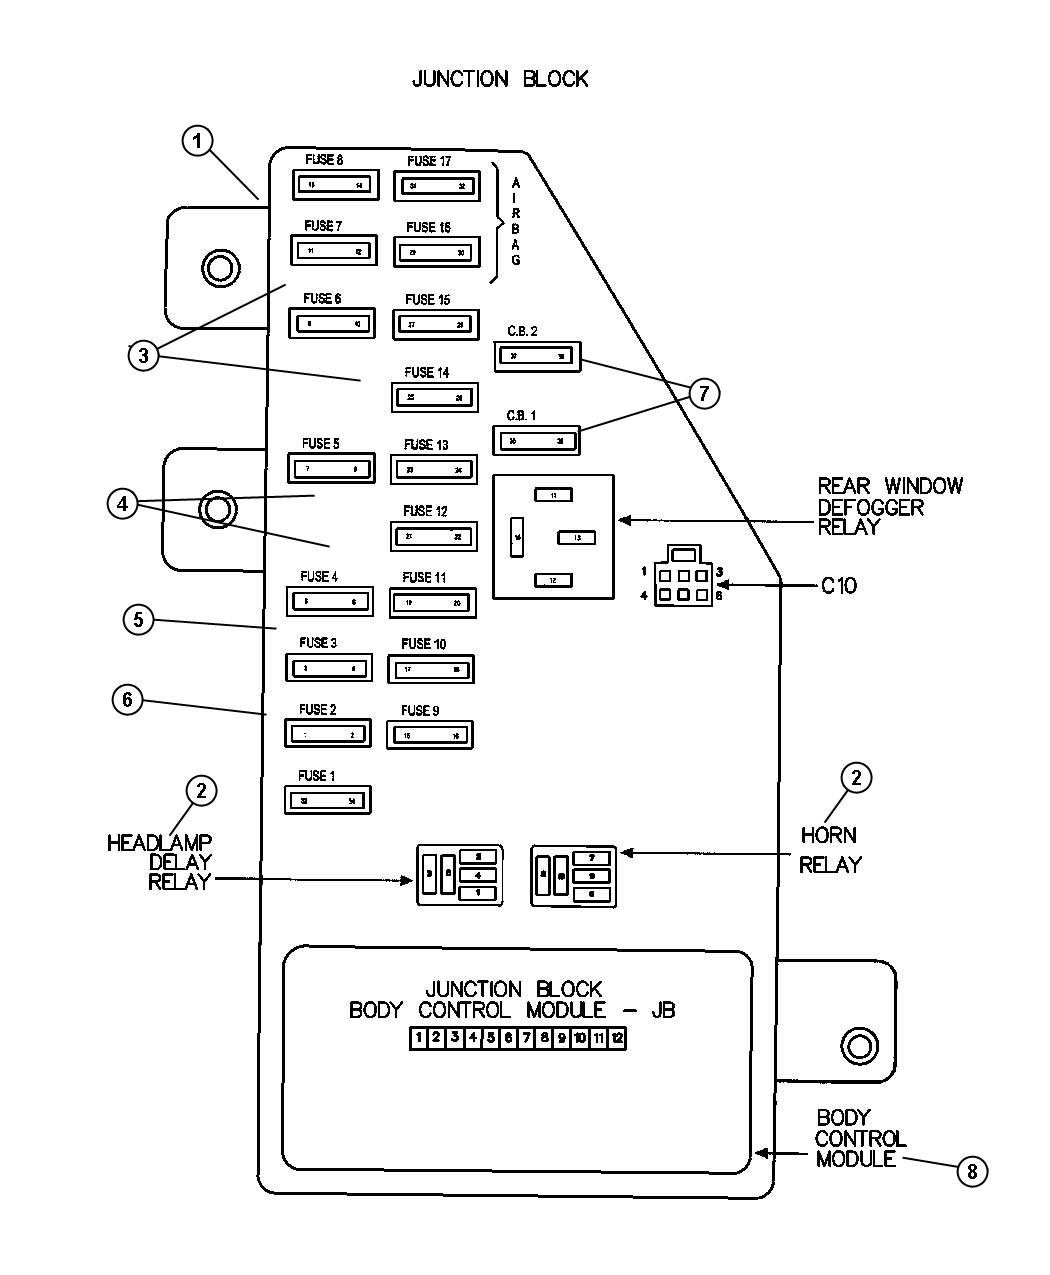 hight resolution of 2001 dodge ram 2500 fuse diagram wiring diagram paperwiring diagram for windows on 2001 dodge ram